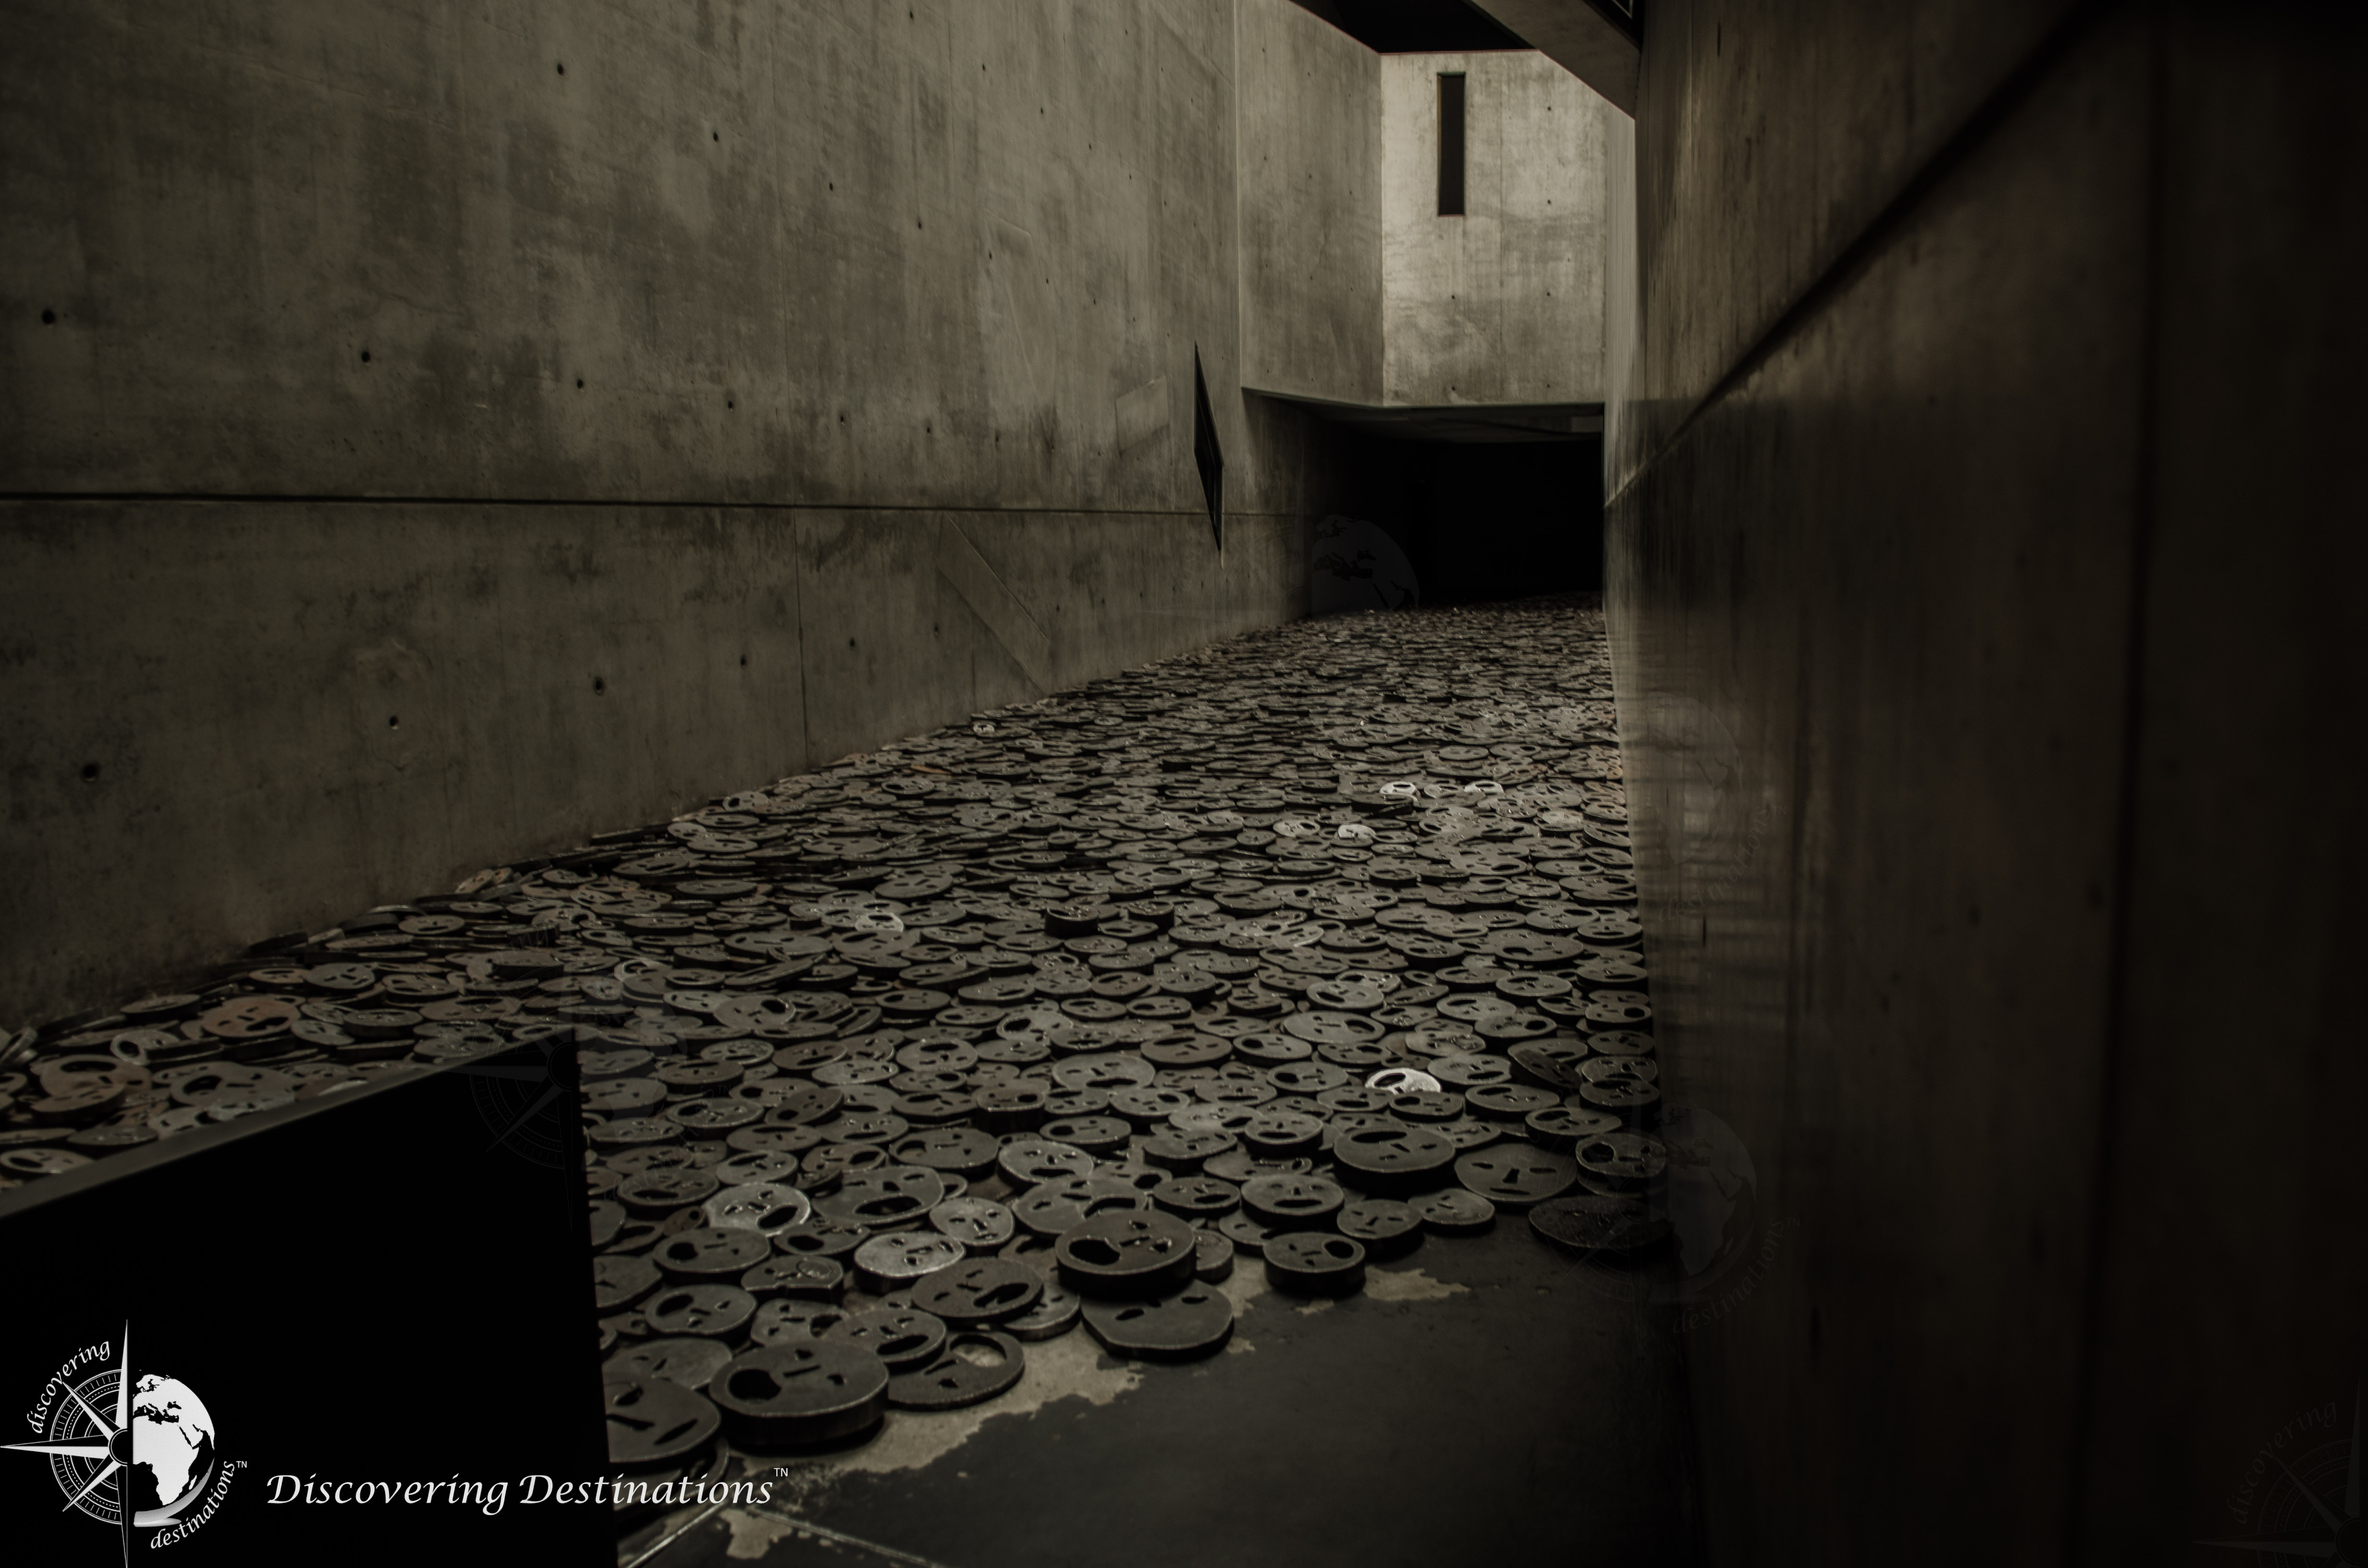 Discovering Jewish Museum, Berlin